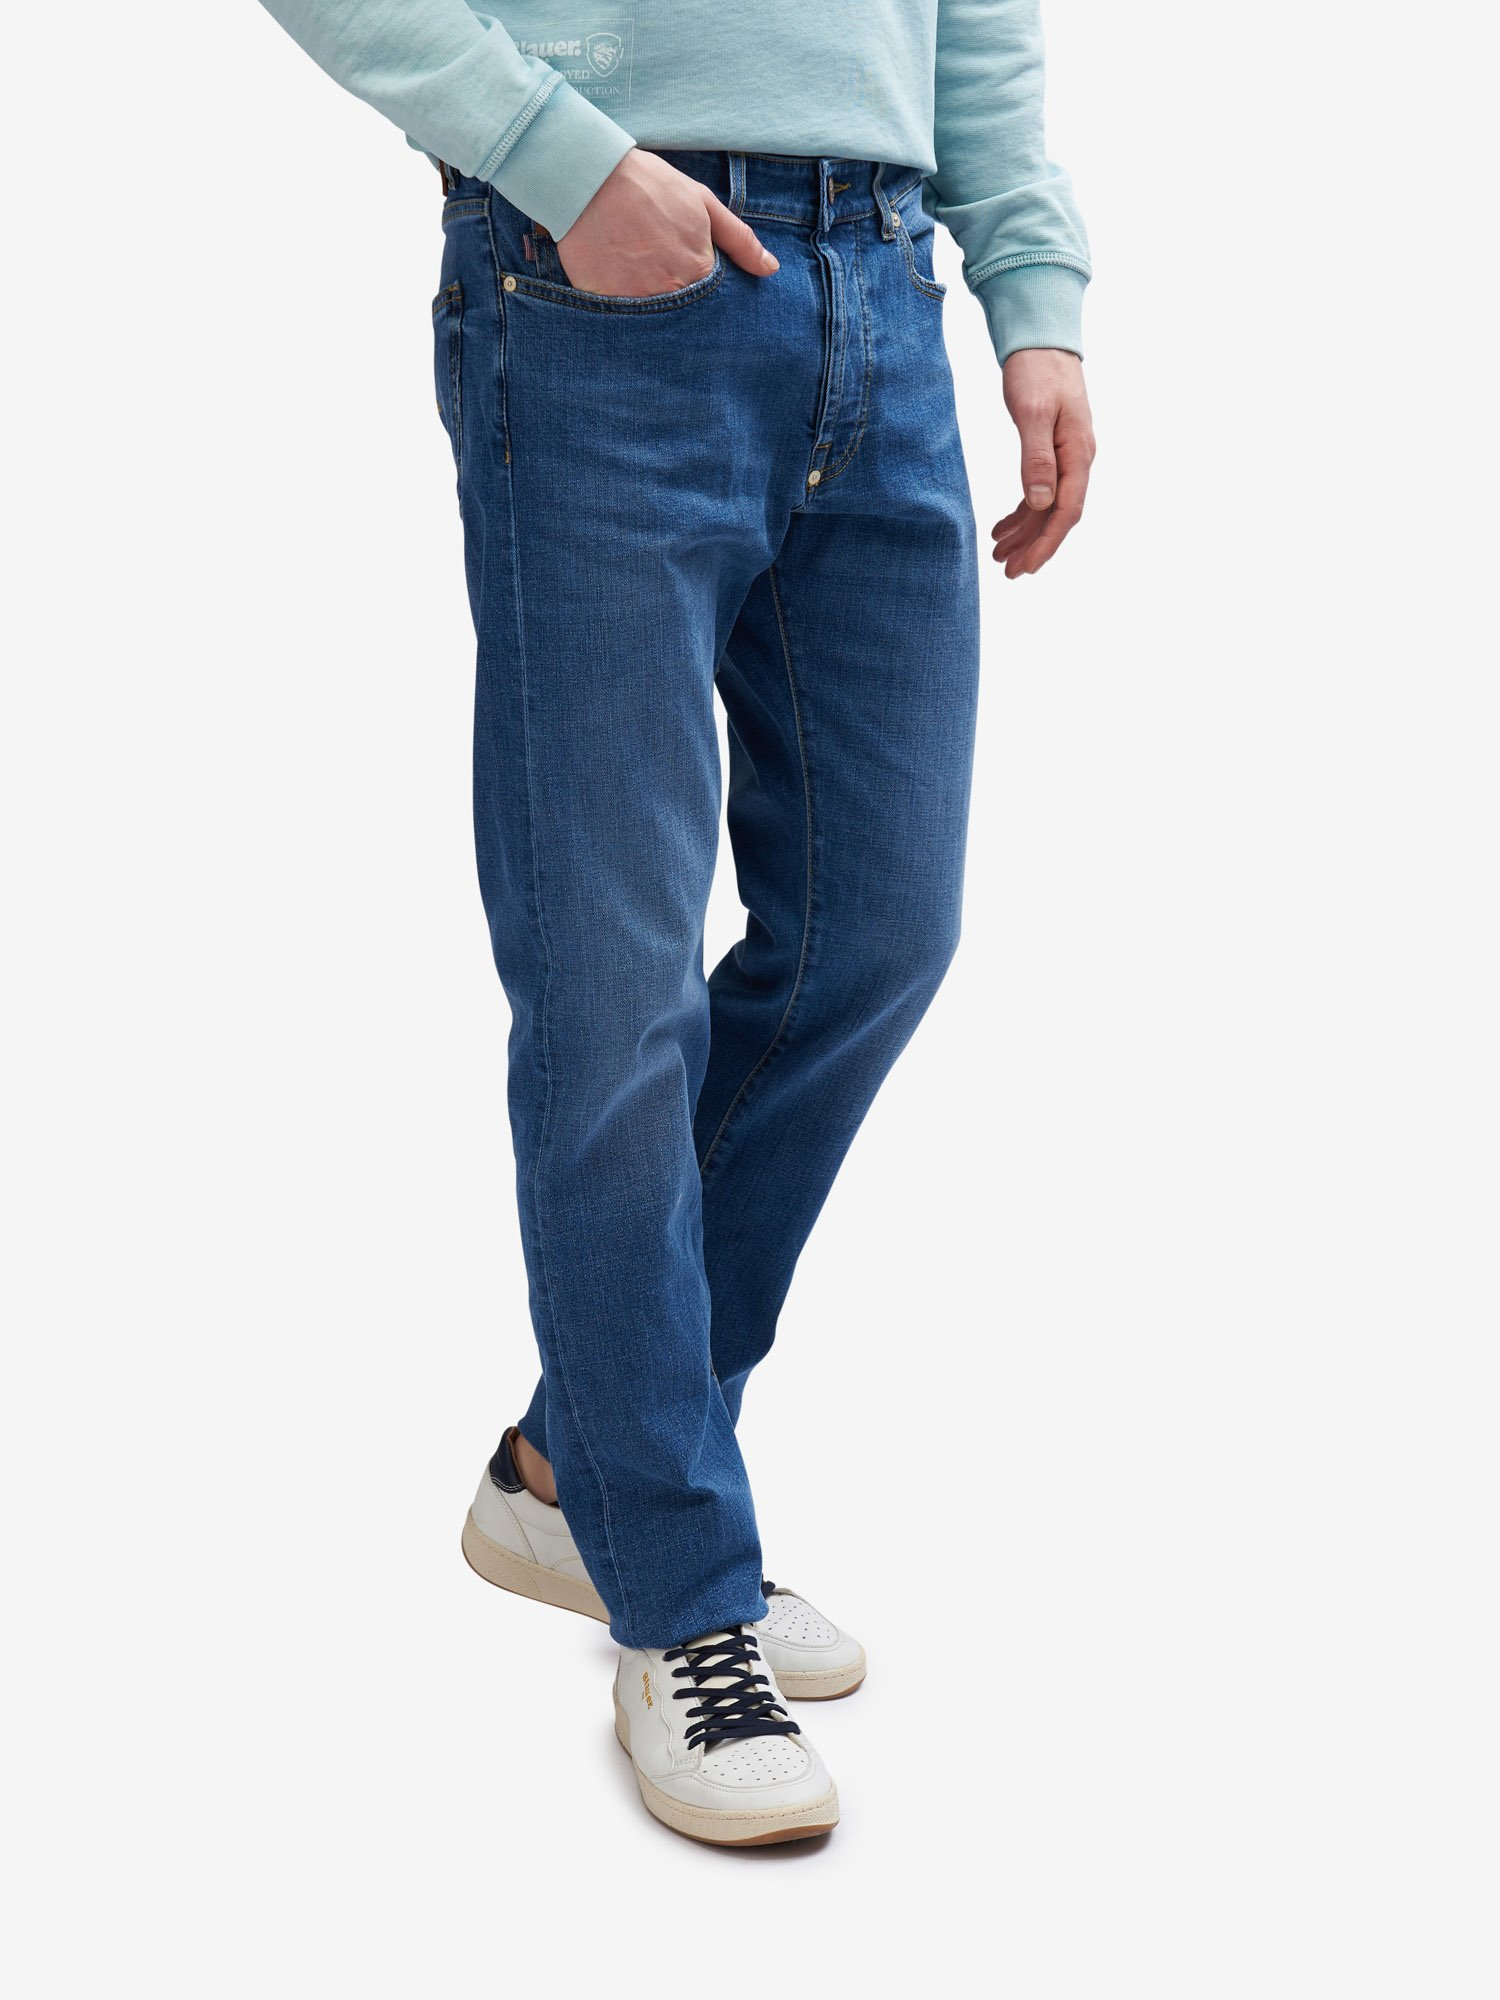 BROOKLYN 5 POCKET JEANS - Blauer